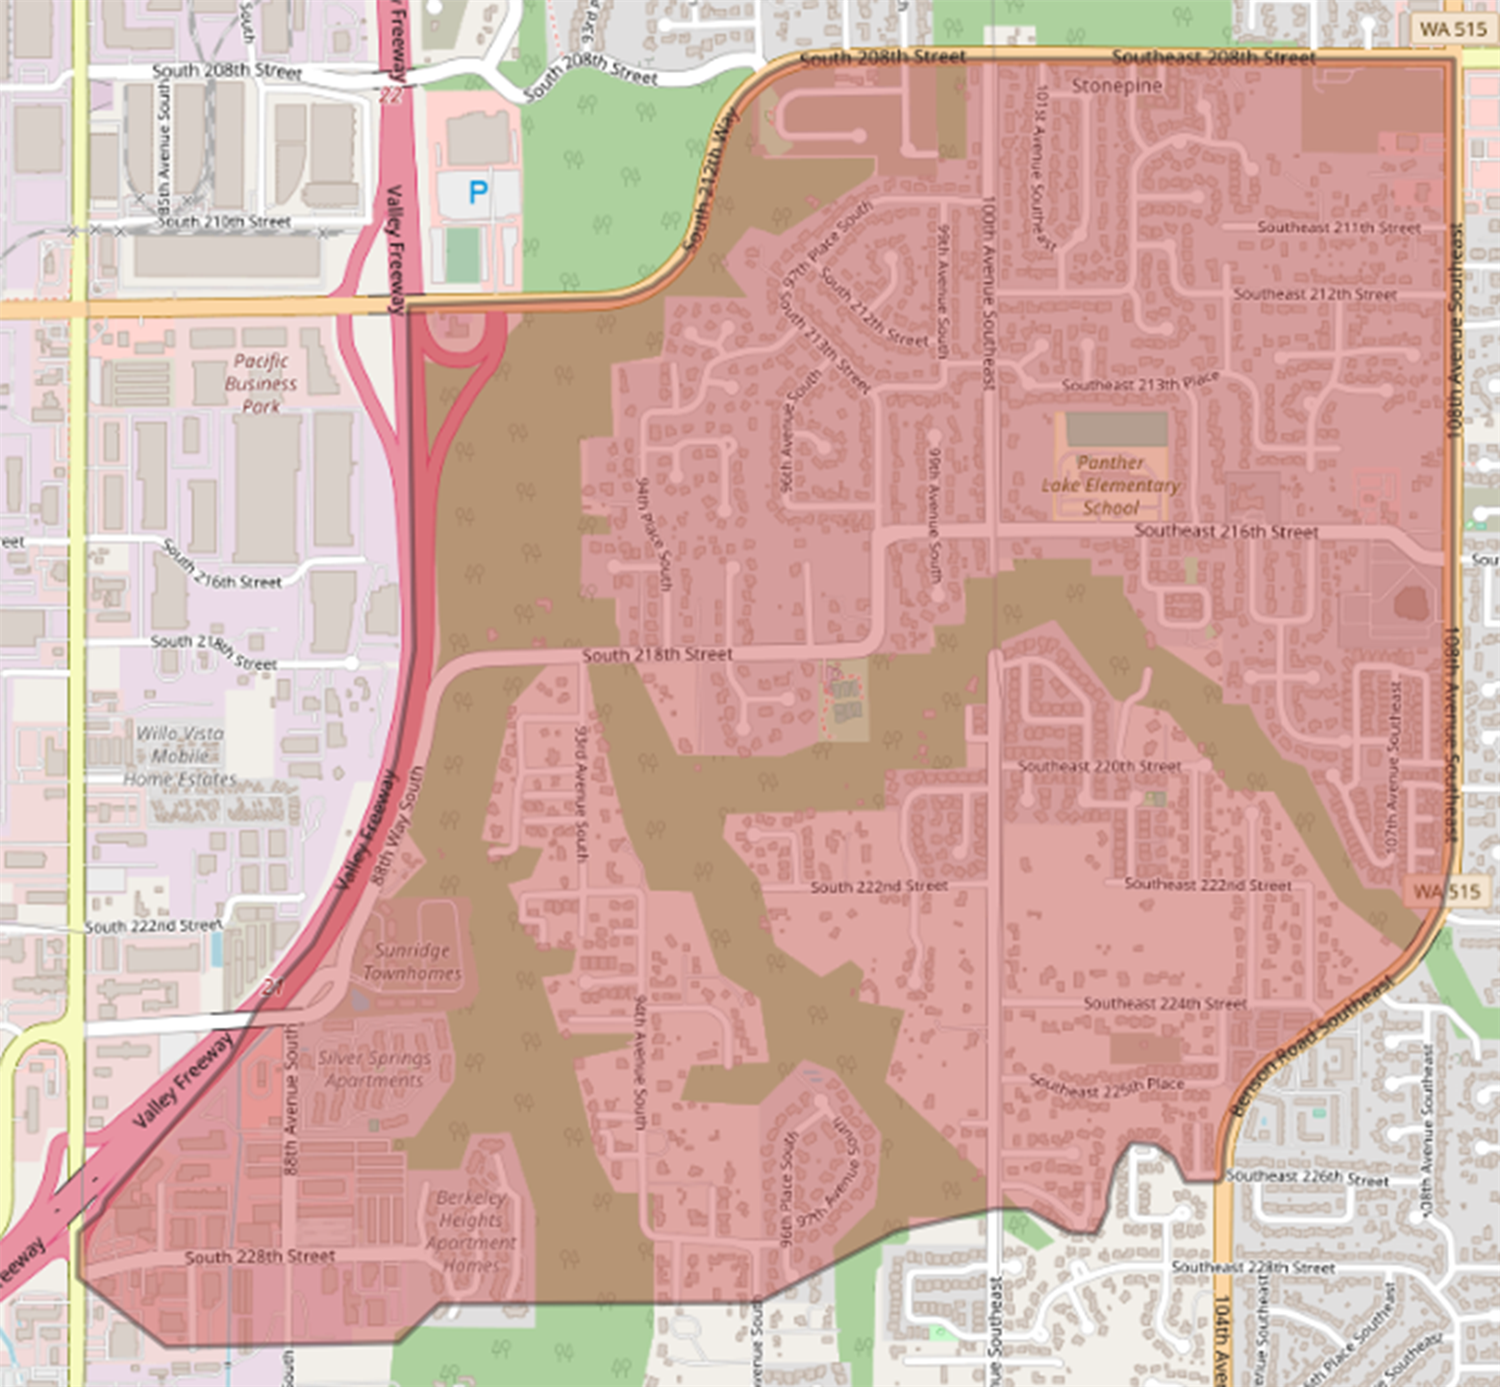 Proposed new Panther Lake Elementary boundary map